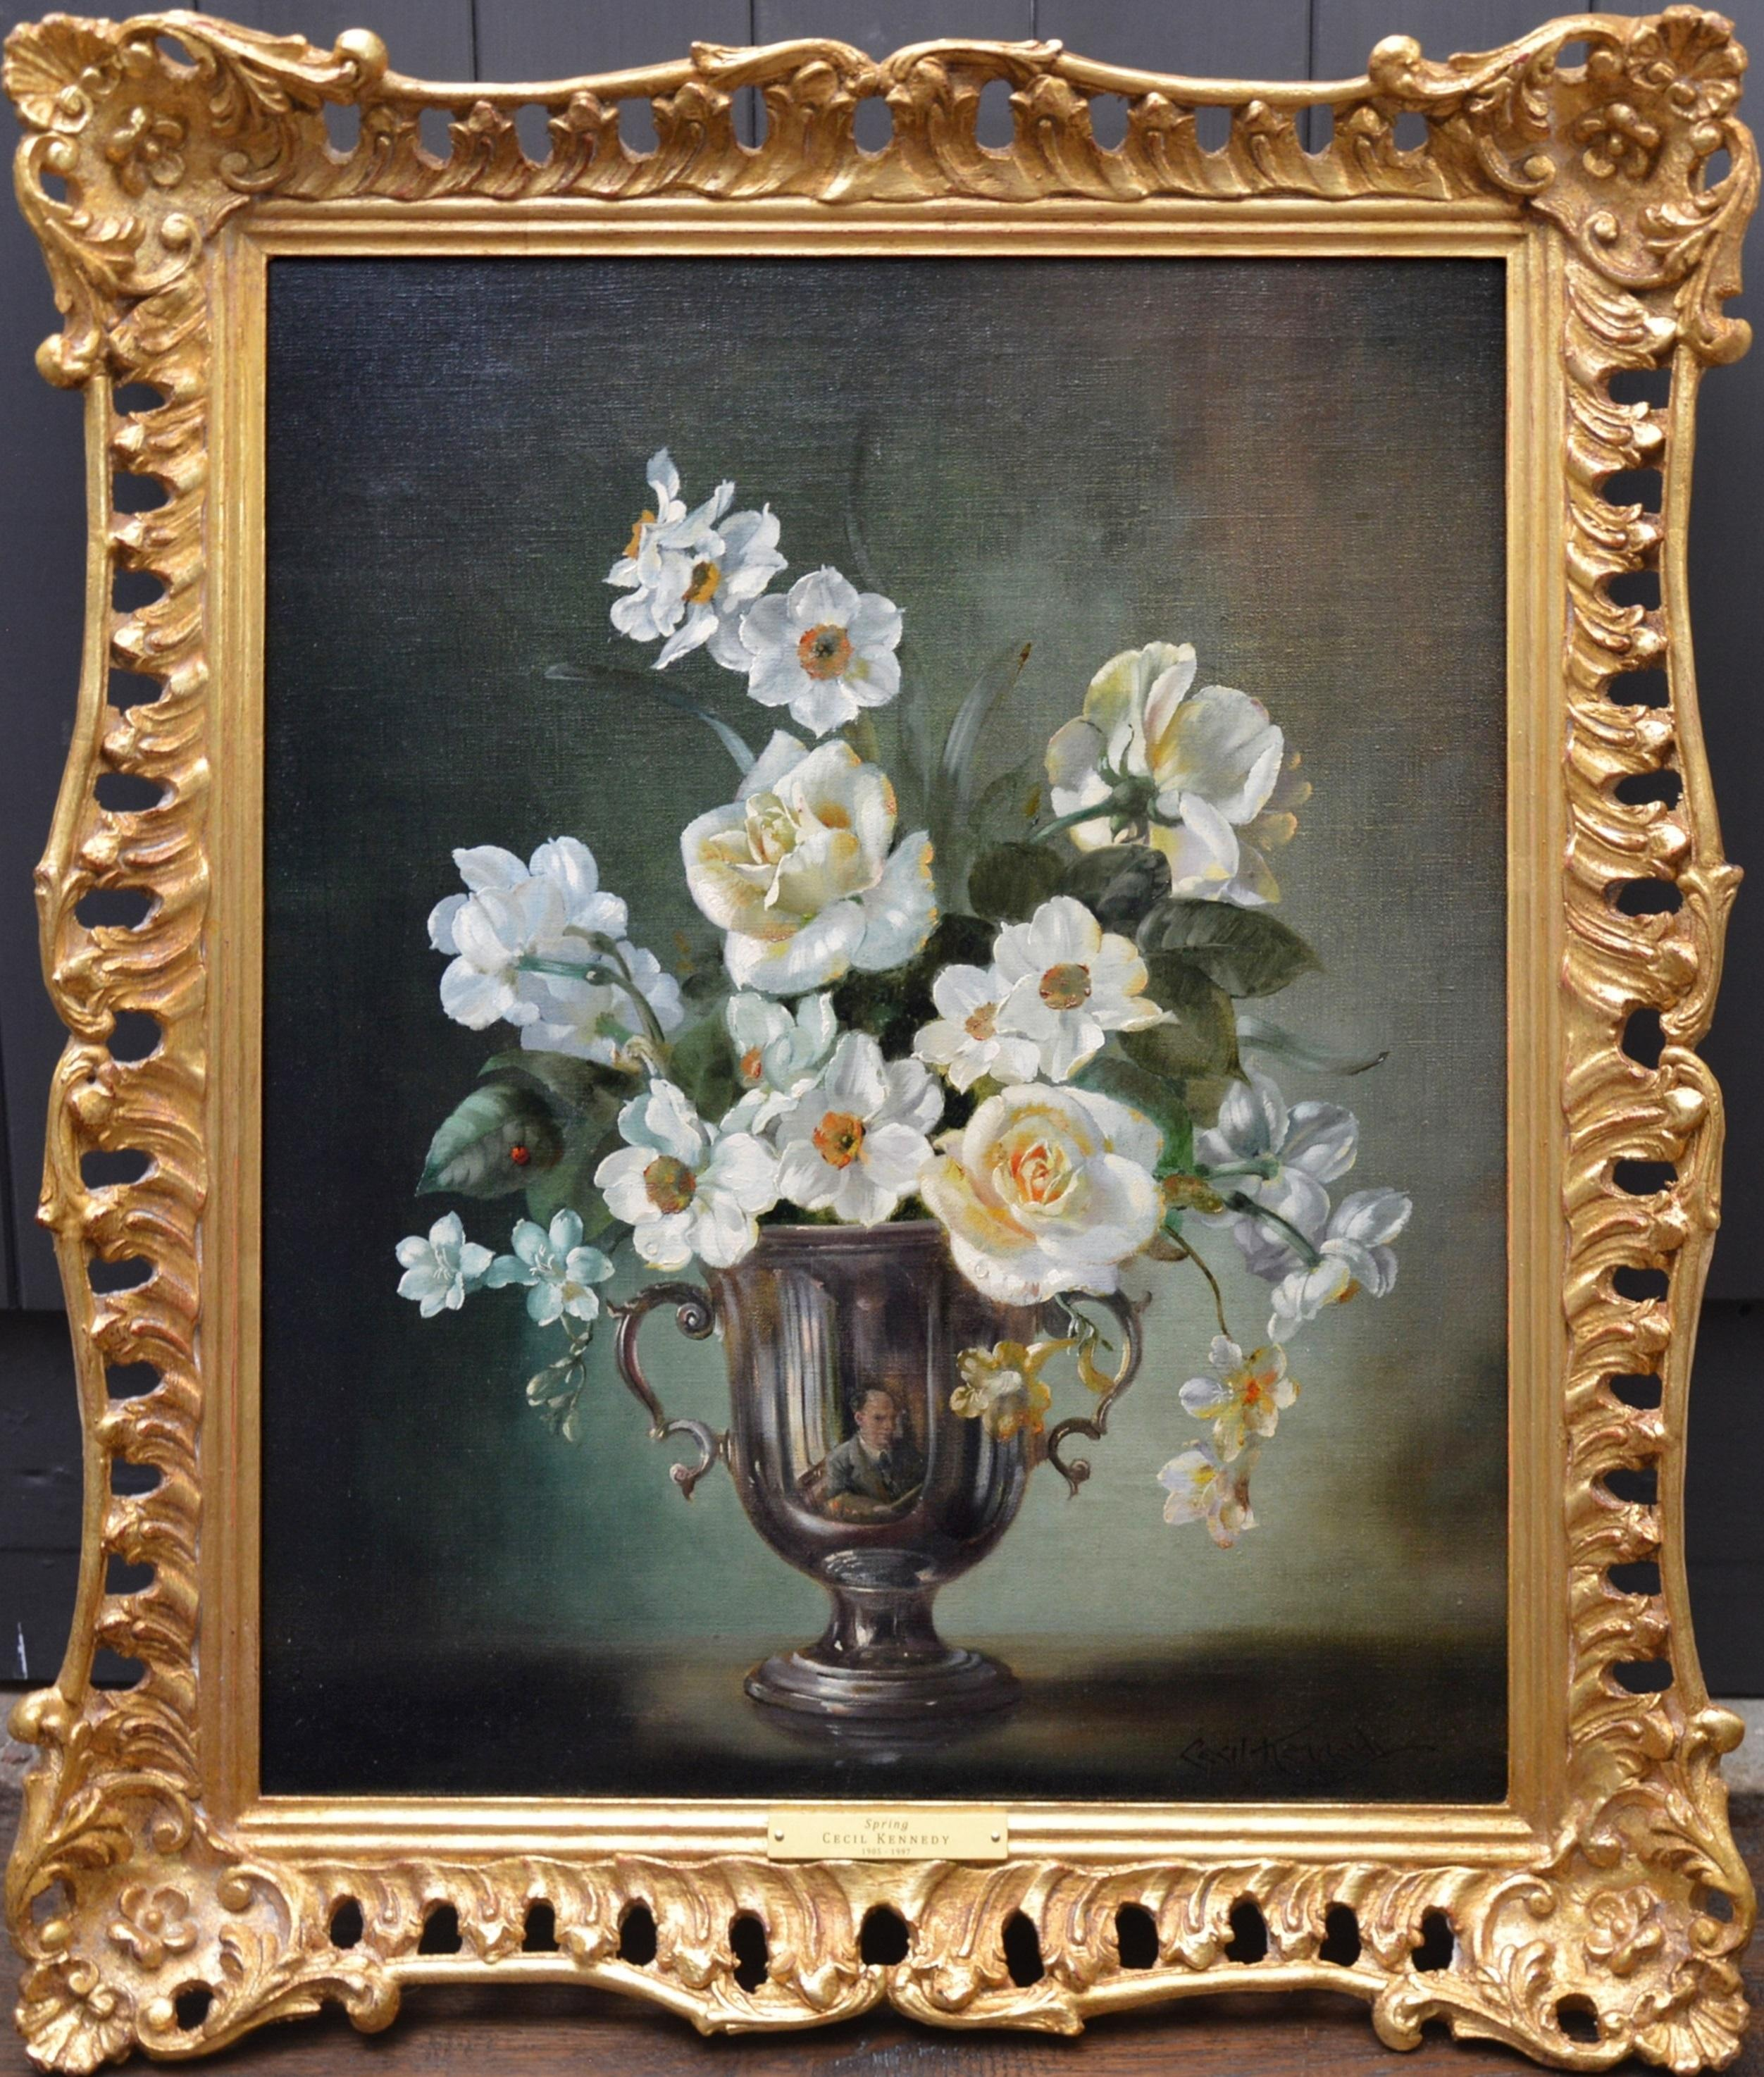 Spring - Floral Still Life of White Daffodils & Roses with Hidden Self Portrait